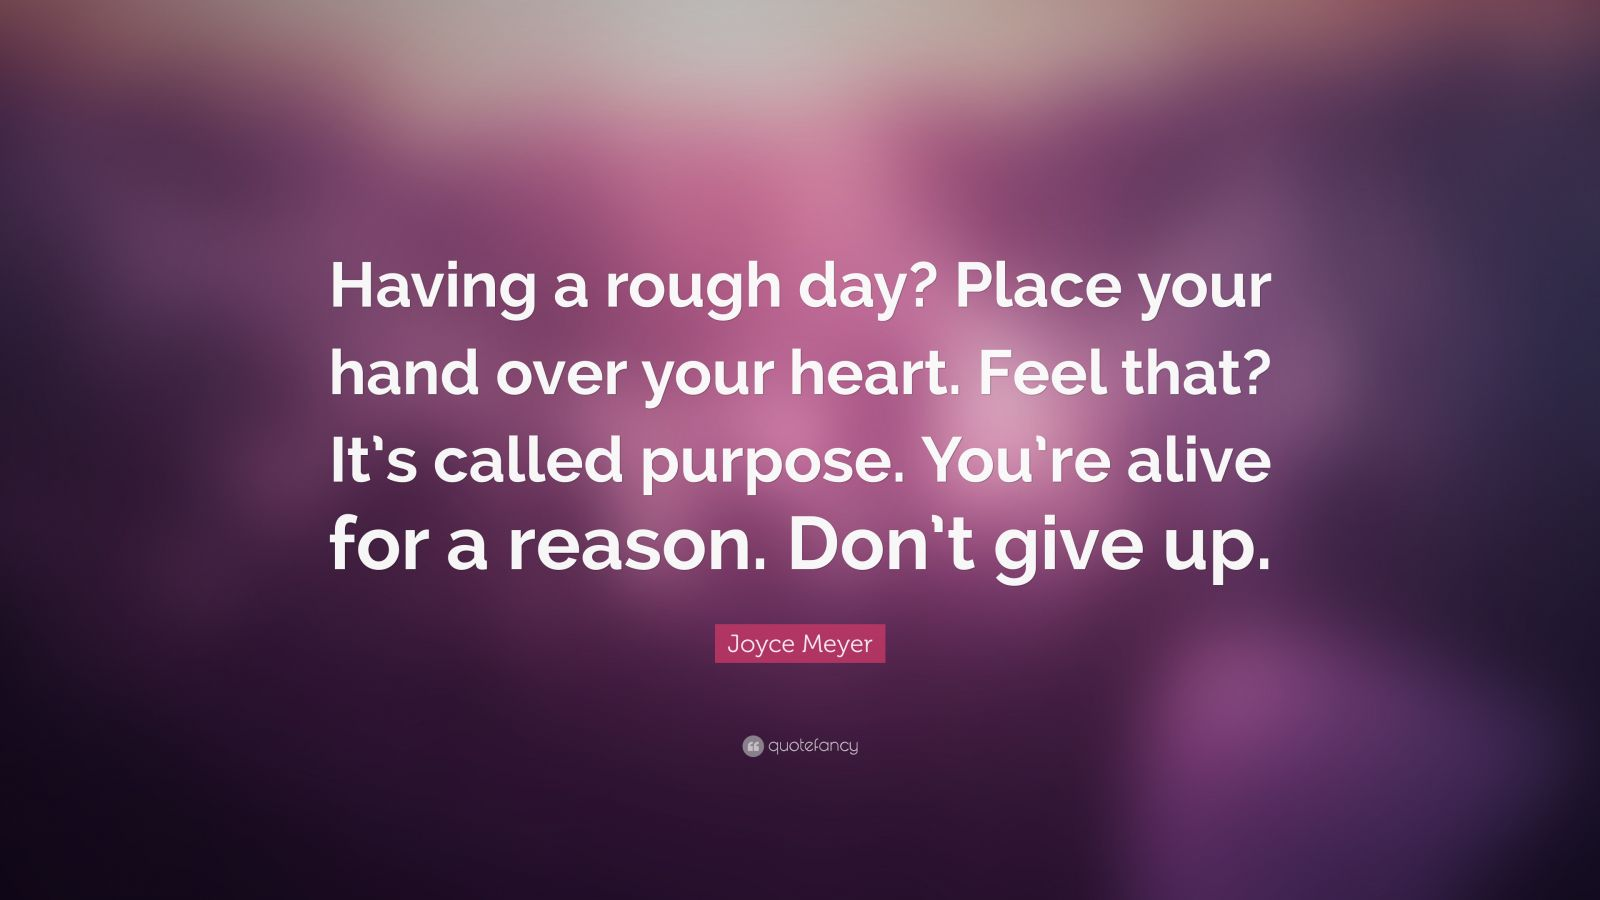 Courage Wallpapers Quotes Joyce Meyer Quote Having A Rough Day Place Your Hand